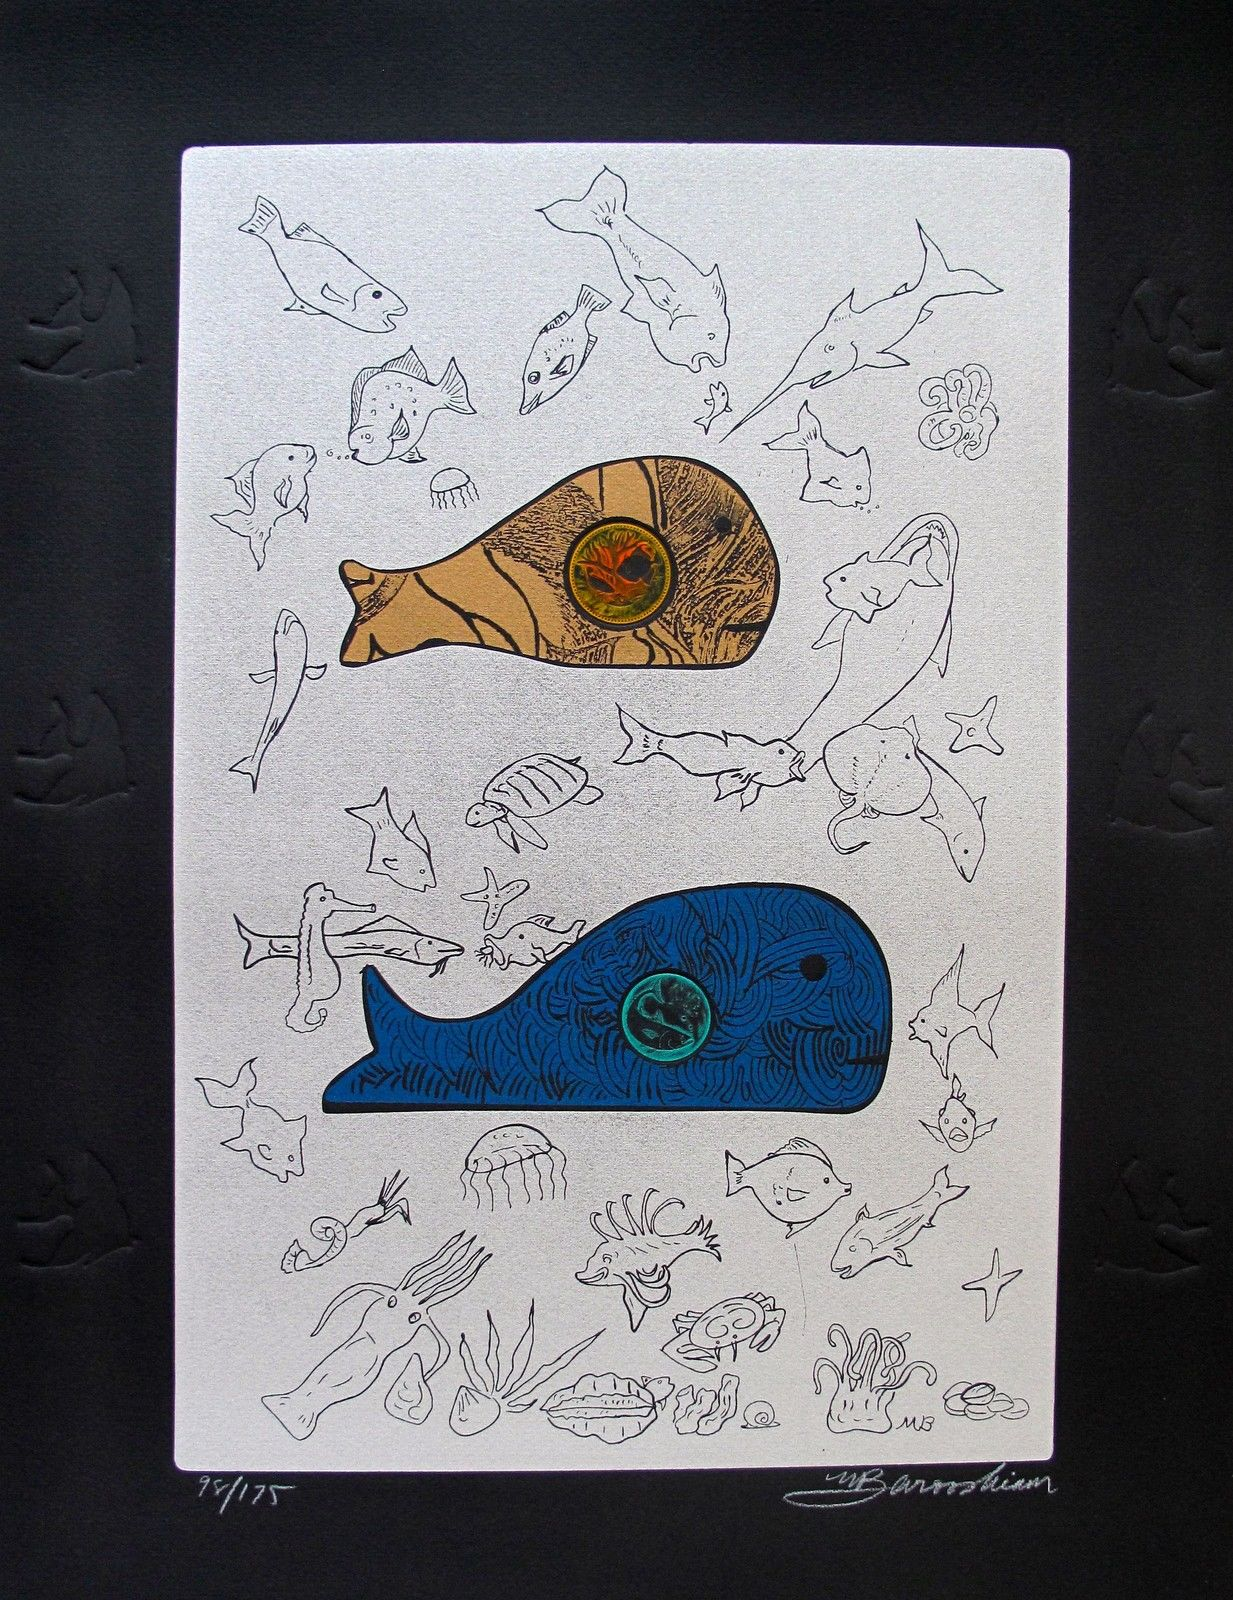 Martin Barooshian BIG FISH EAT LITTLE FISH Hand Signed Limited Edition Etching